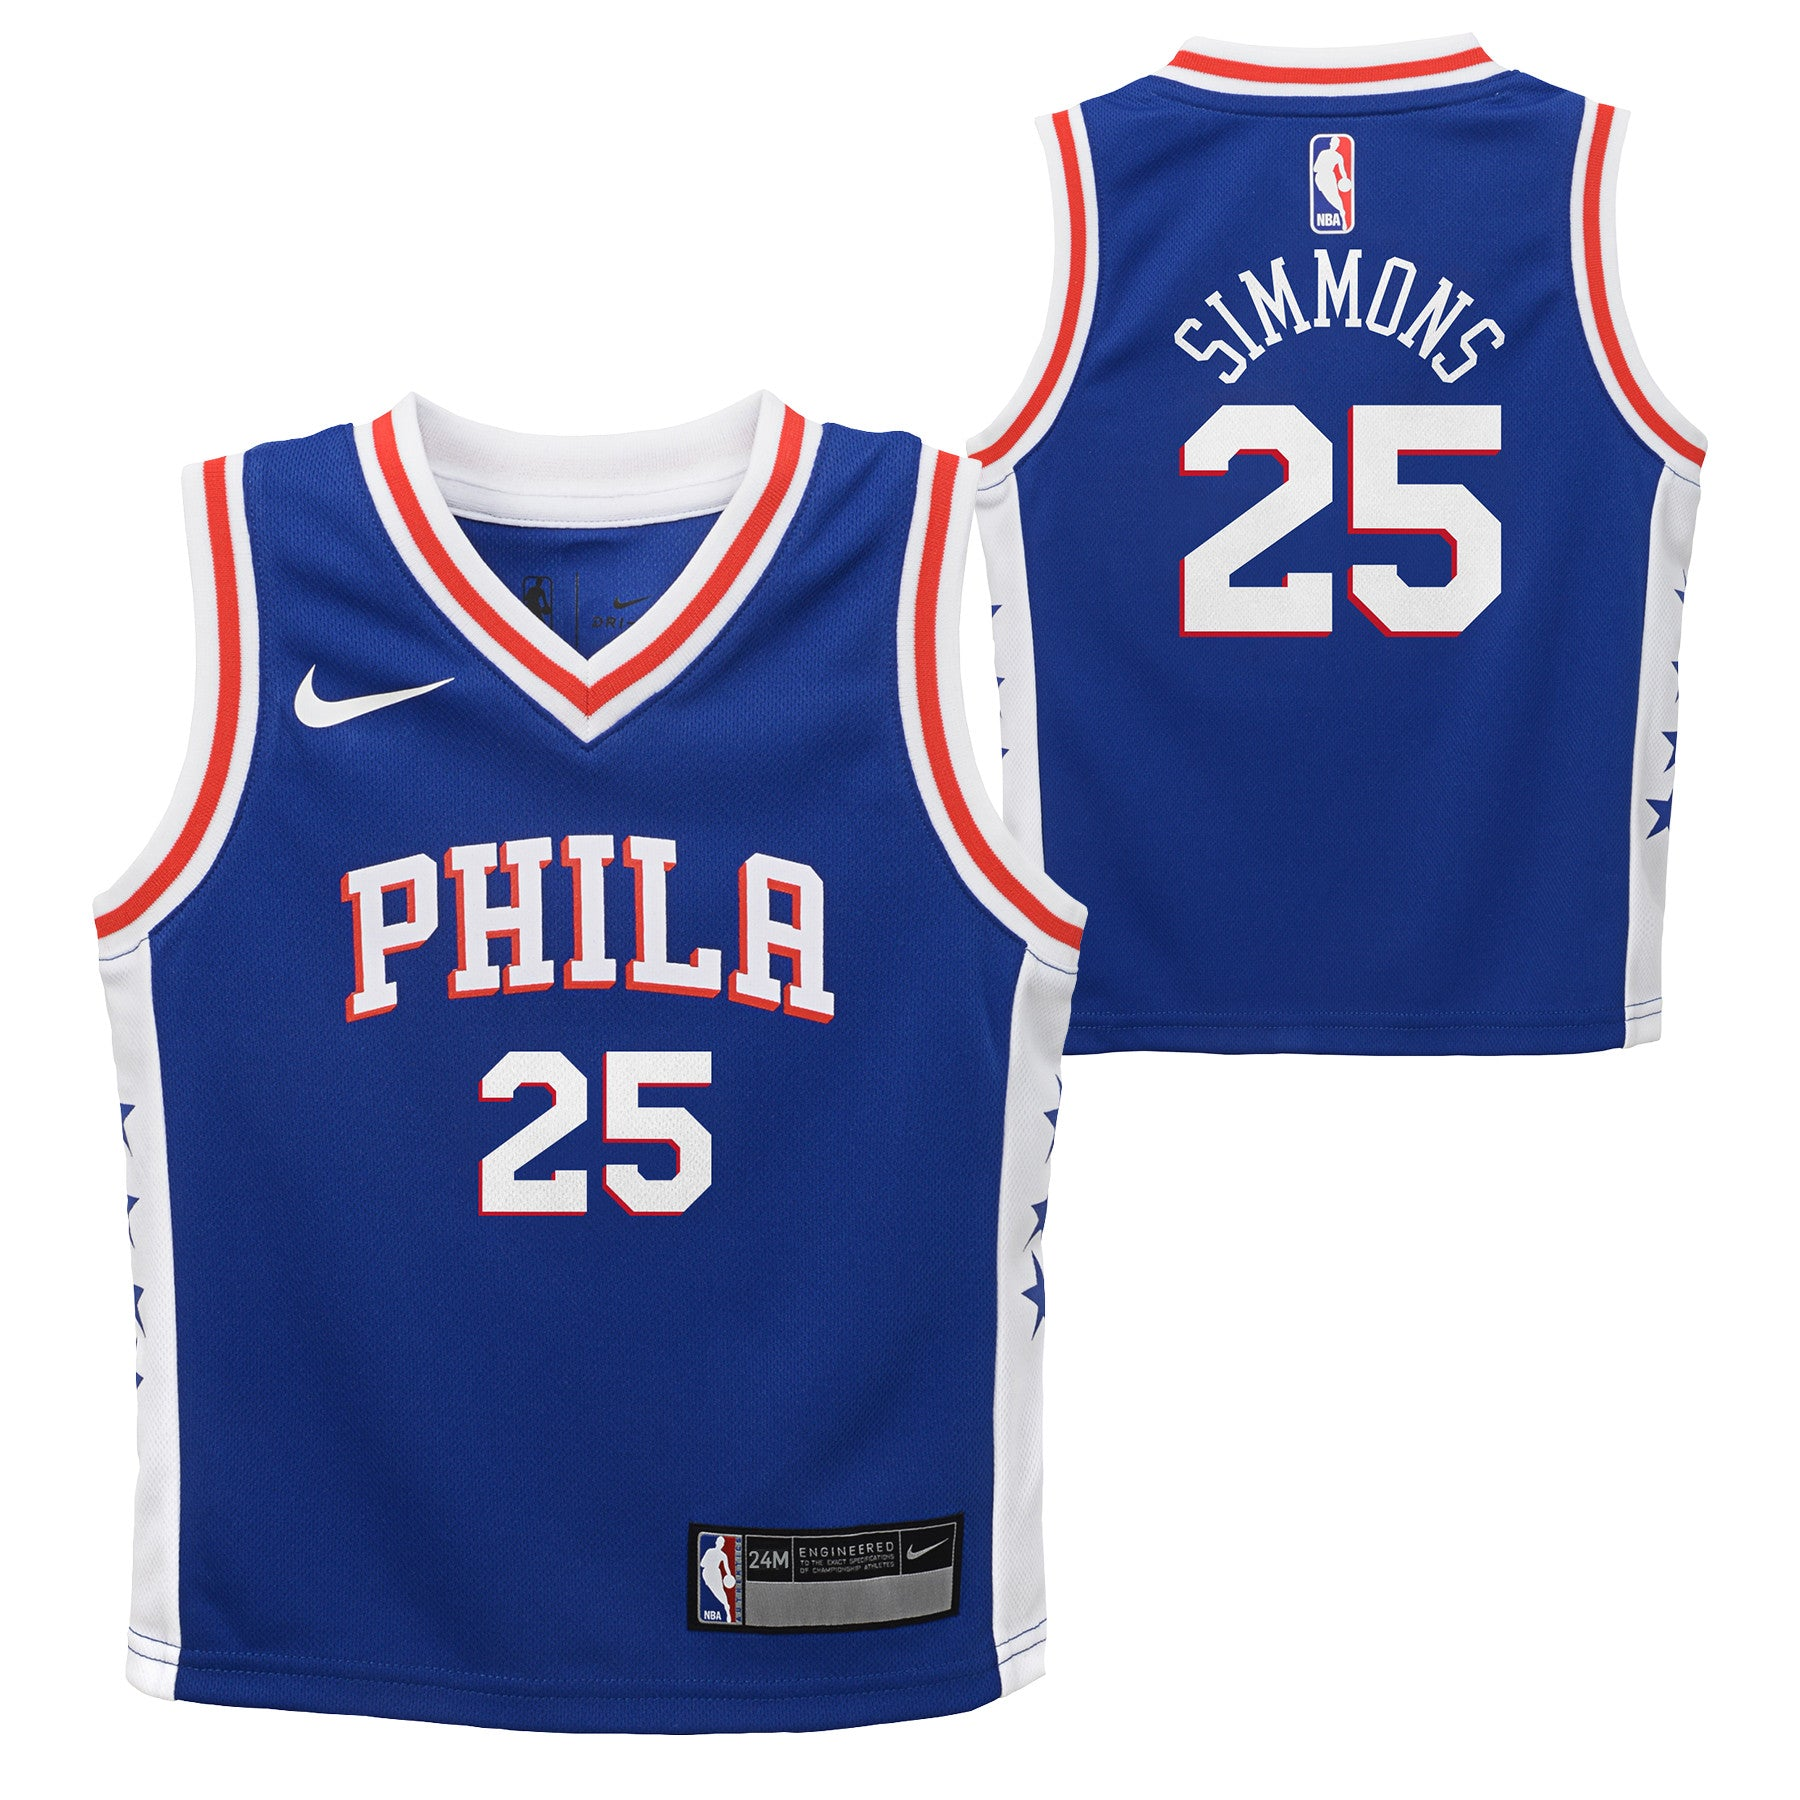 BEN SIMMONS PHILADELPHIA 76ERS NBA NIKE ICON INFANT JERSEY – Basketball  Jersey World f6f45f072